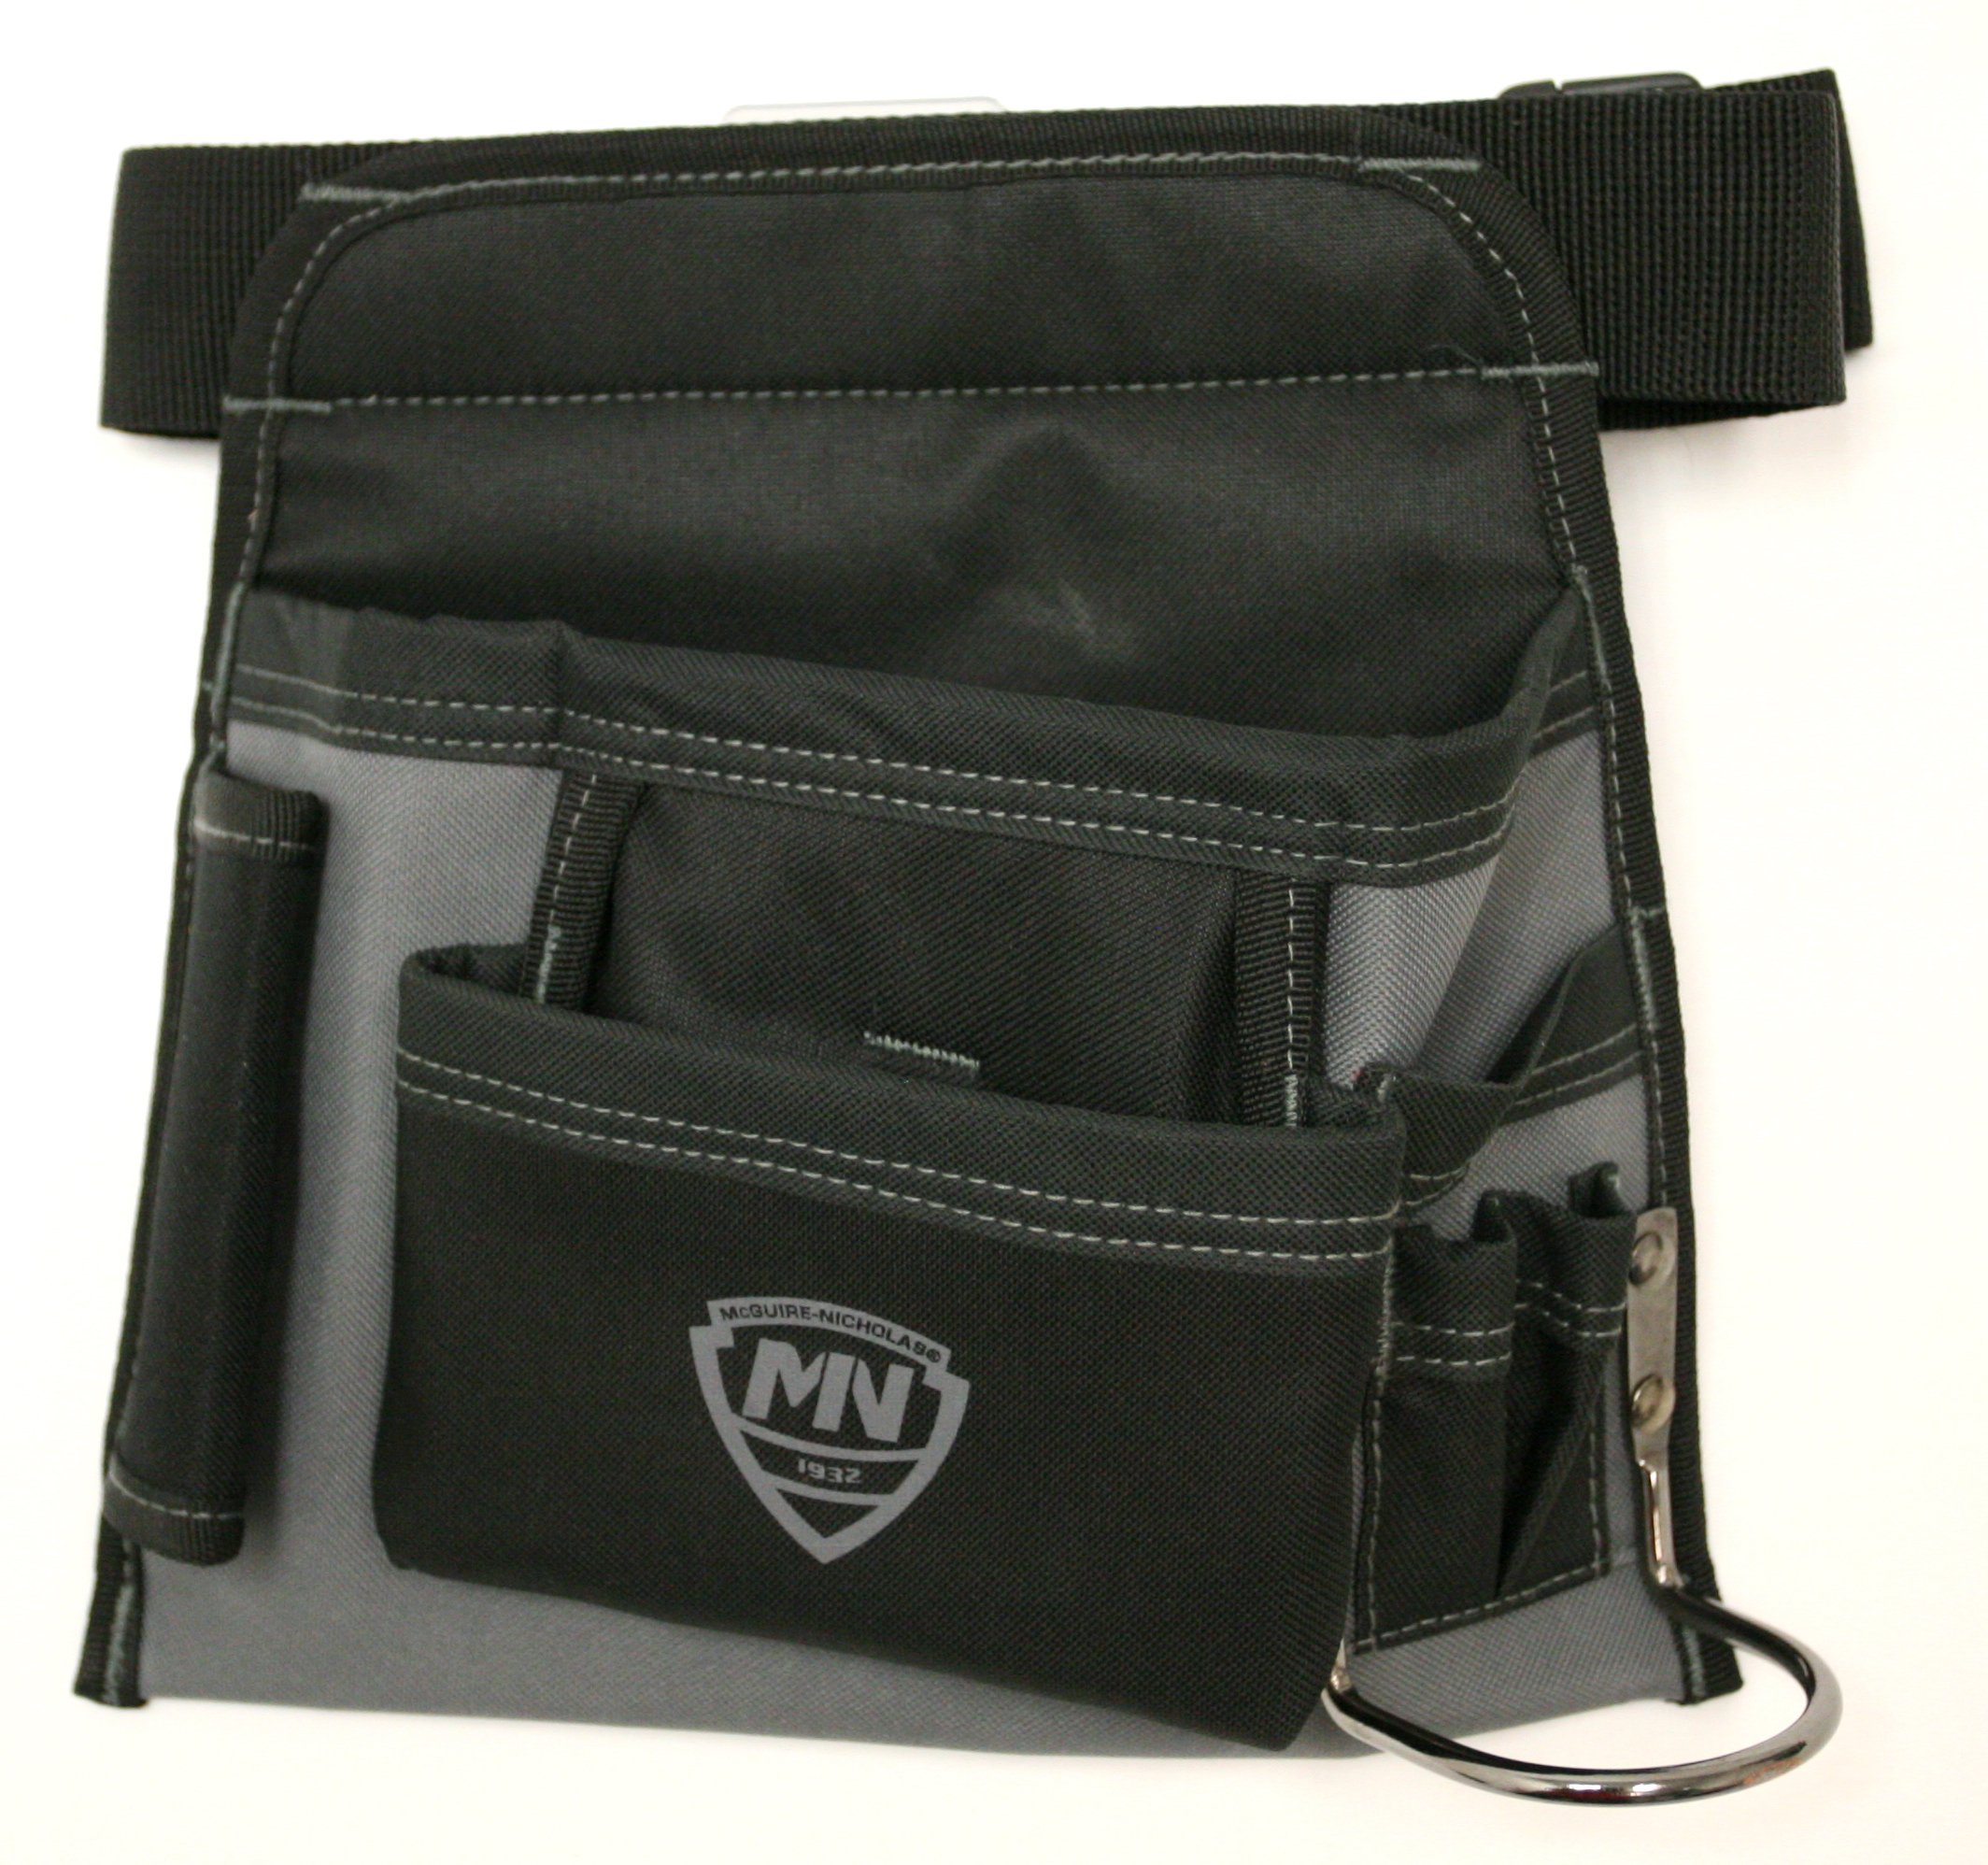 McGuire Nicholas 5-Pocket Handyman's Tool belt and pouch with hammer loop. Adjustable up to 48 inches